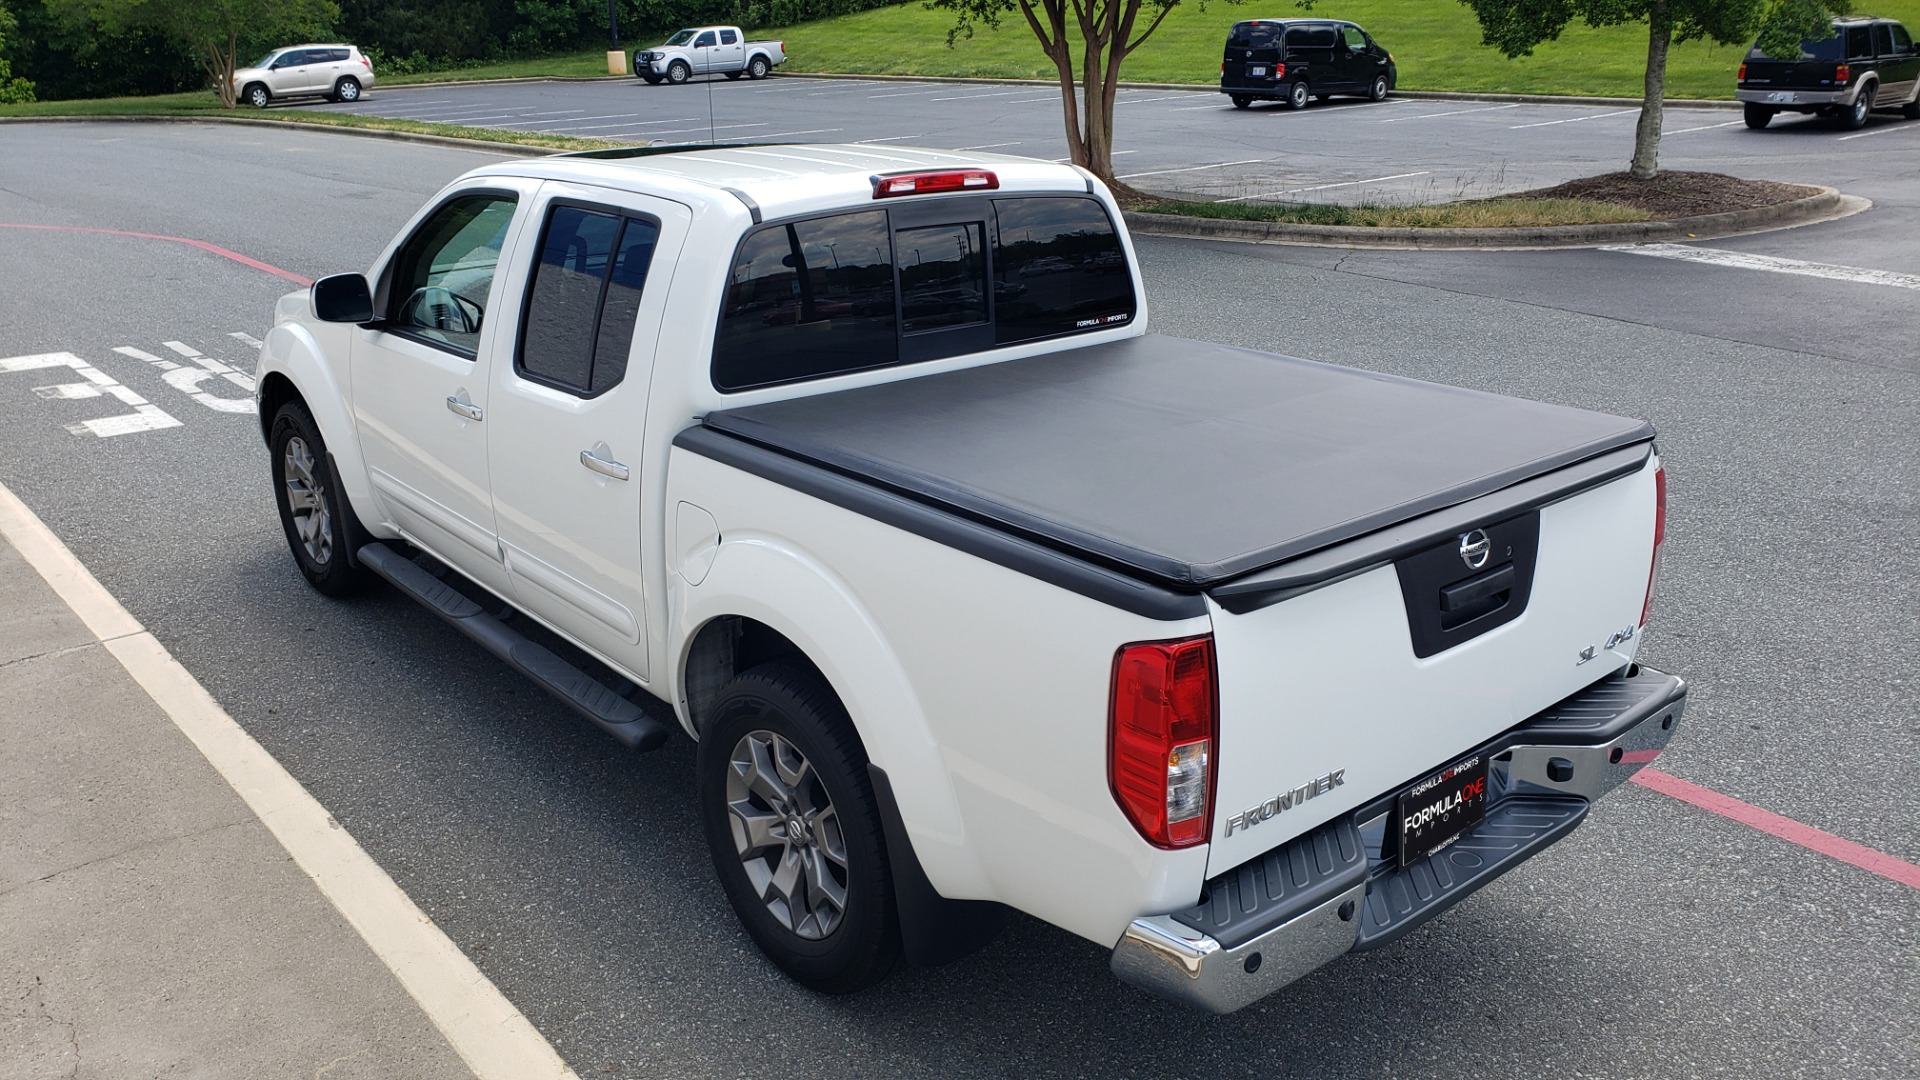 Used 2019 Nissan FRONTIER SL CREW CAB / 4X4 / NAV / SUNROOF / ROCKFORD FOSGATE / LOADED for sale $31,495 at Formula Imports in Charlotte NC 28227 17